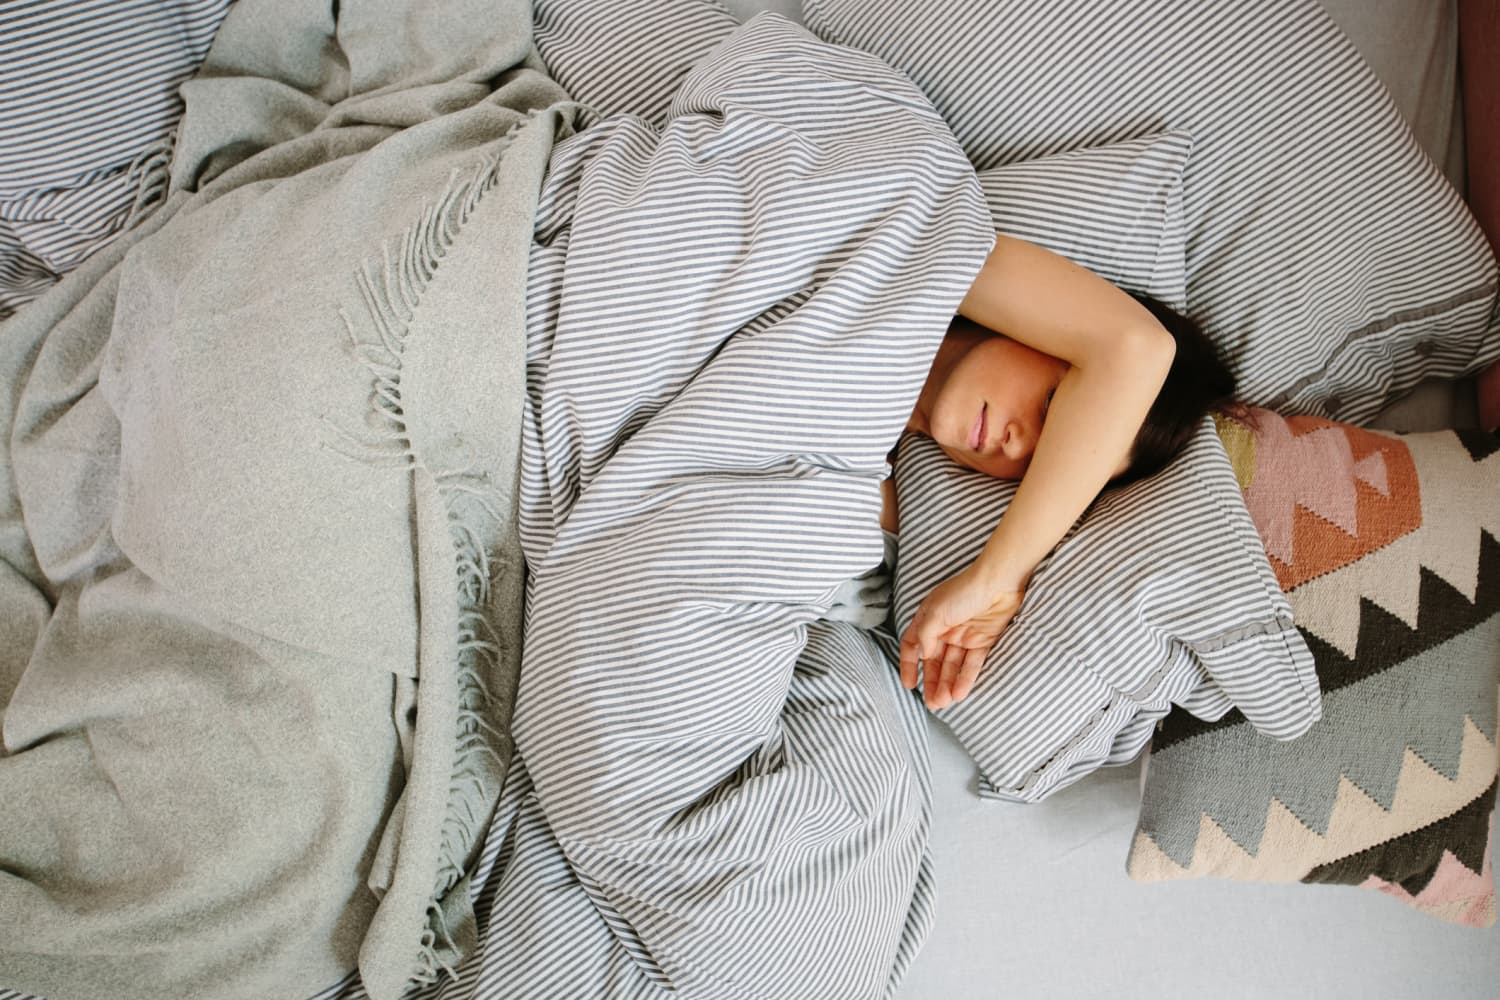 My Search for the Perfect Pillow Is Over Thanks to This Cooling, Fluffy Find